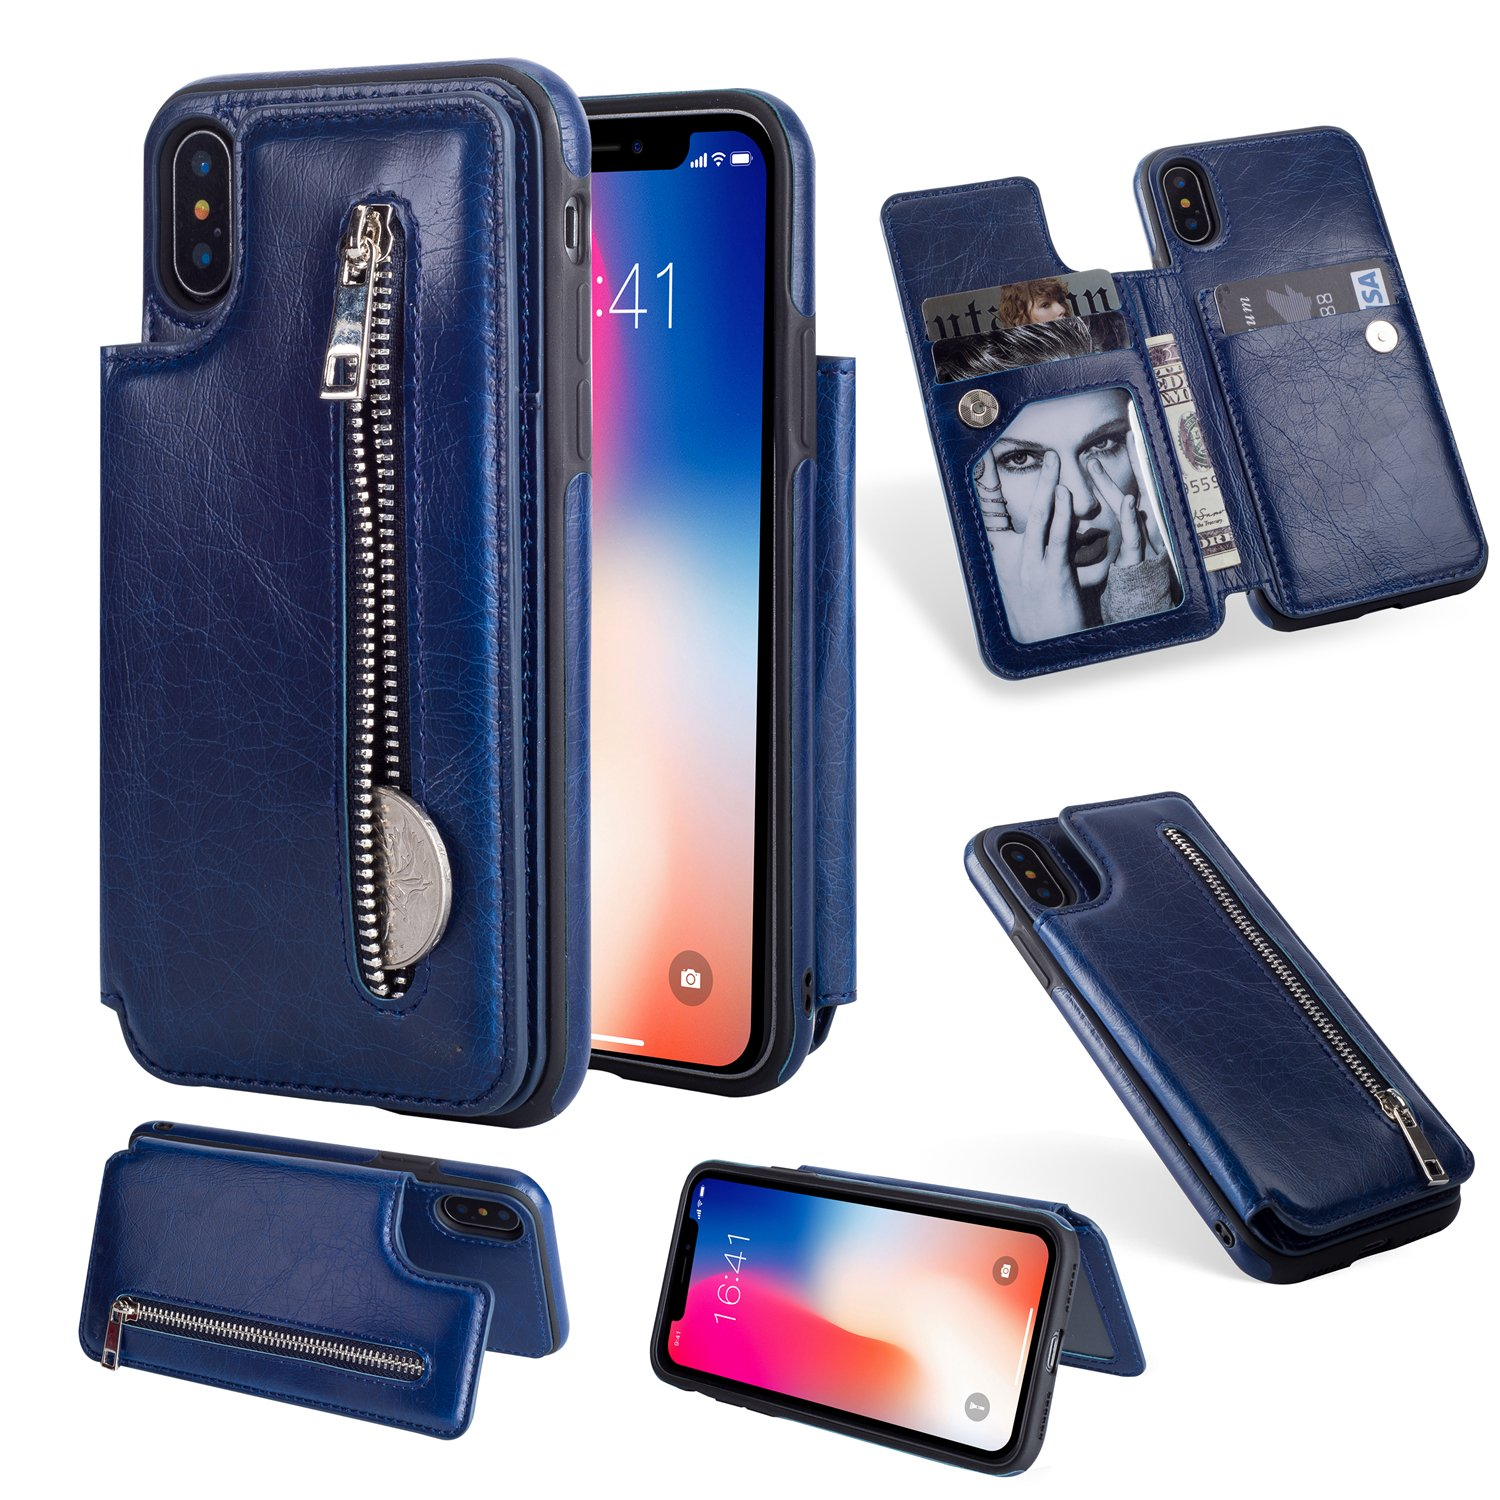 Wallet Case for iPhone Xs Max 6.5 inch,Black PU Leather Stand Case,Ostop Credit Card Holder Zipper Purse Slim Fit Magnetic Clasp Flip Folio Cover with Cash Pocket Soft TPU Bumper Shell